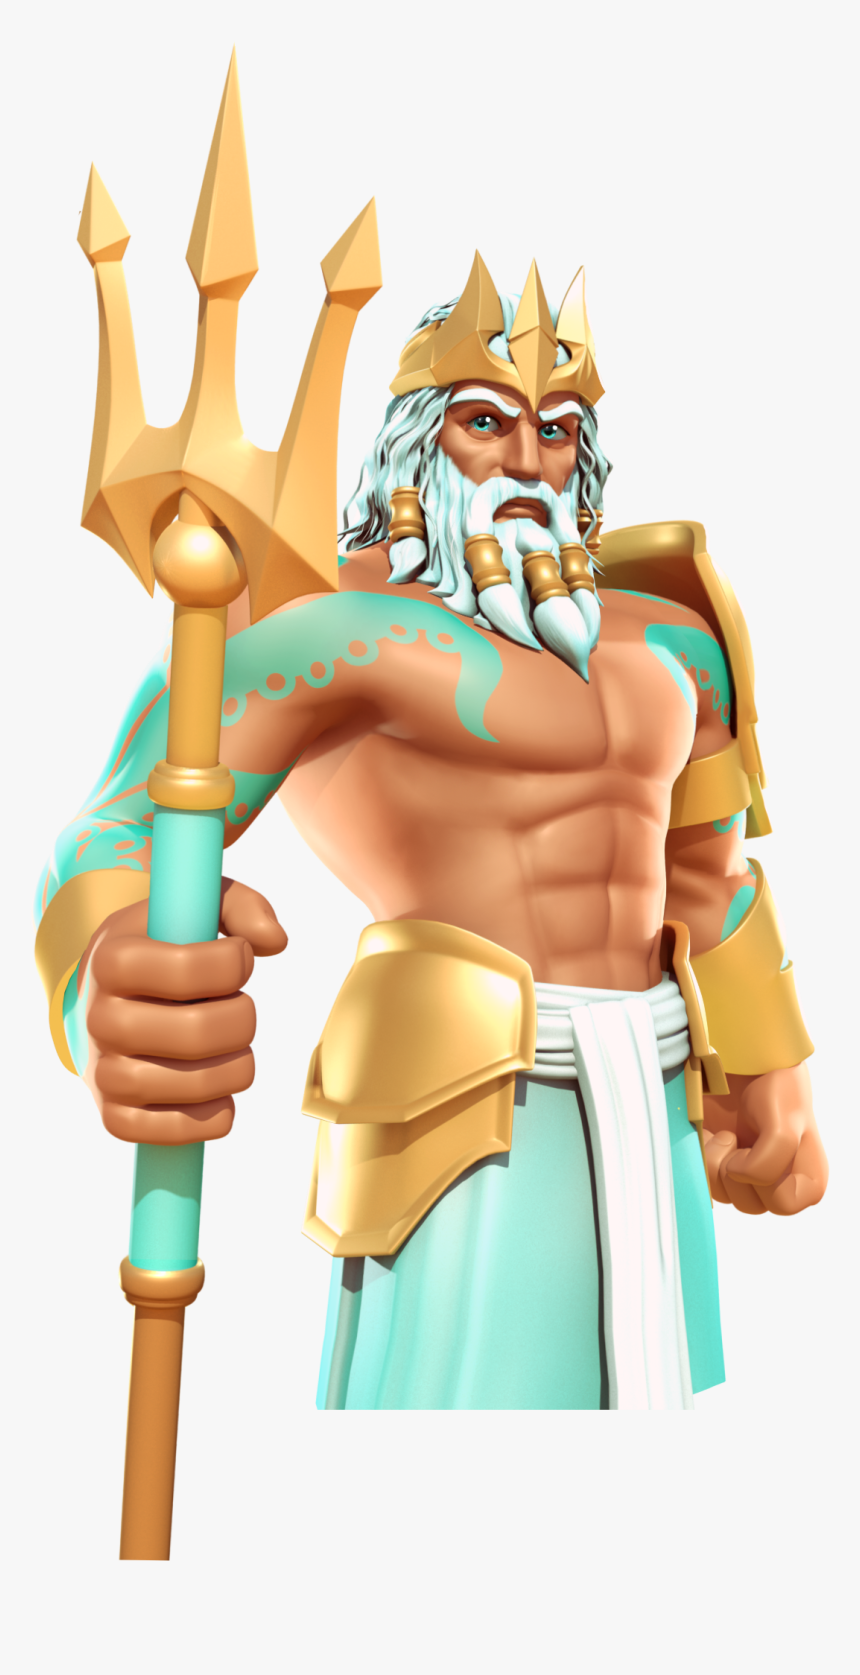 Gods Of Olympus Wikia - Gods Of Olympus Poseidon, HD Png Download, Free Download